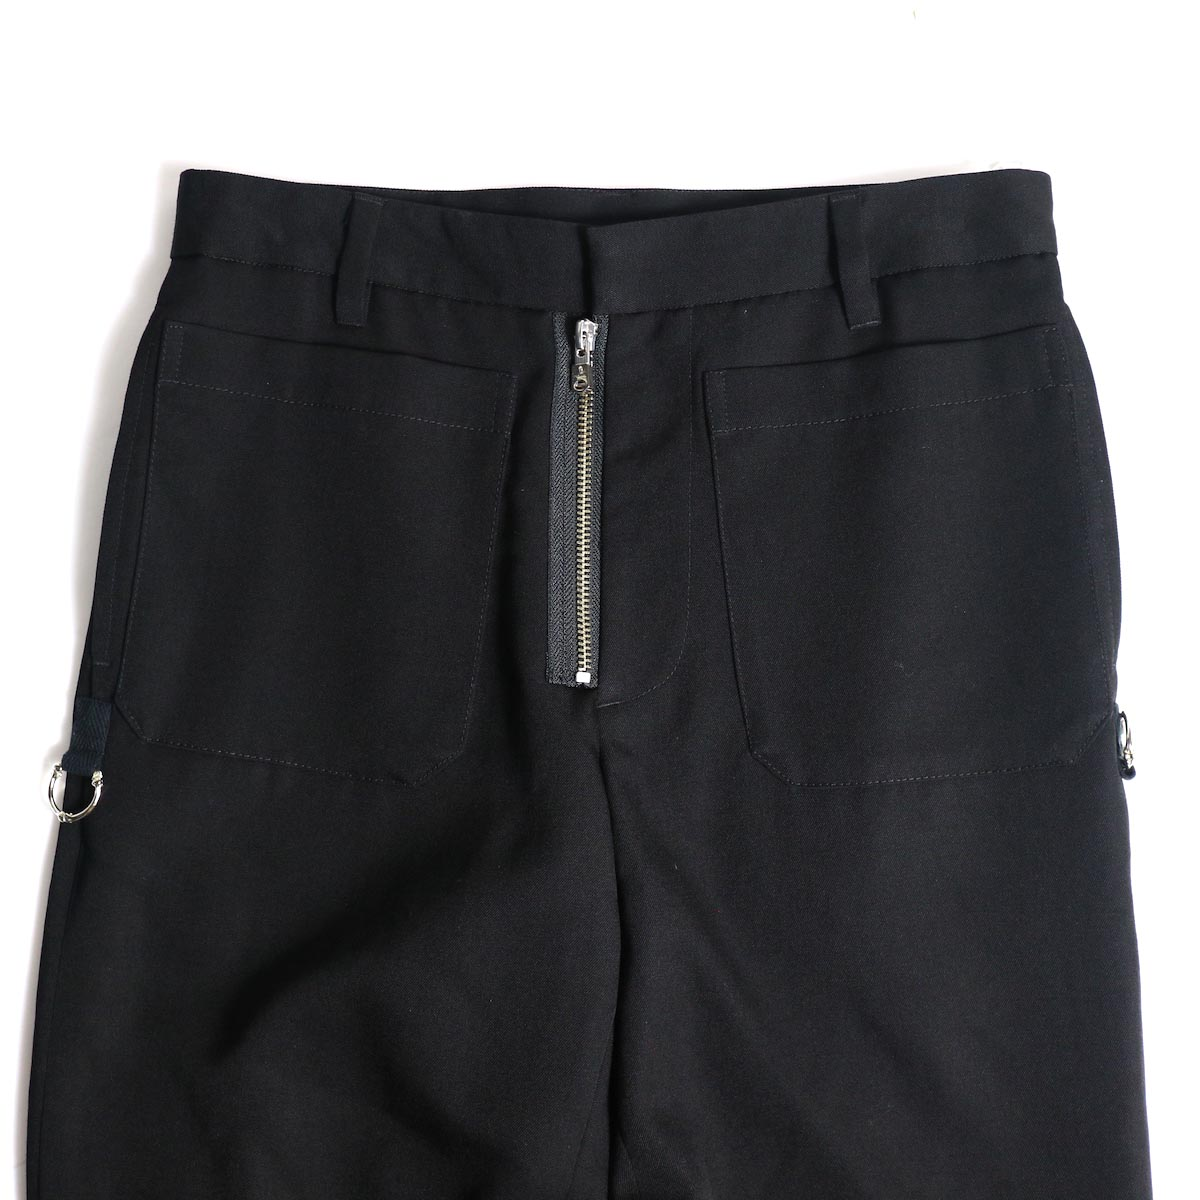 The Soloist / sp.0007bAW20 patch pocket pant. ウエスト